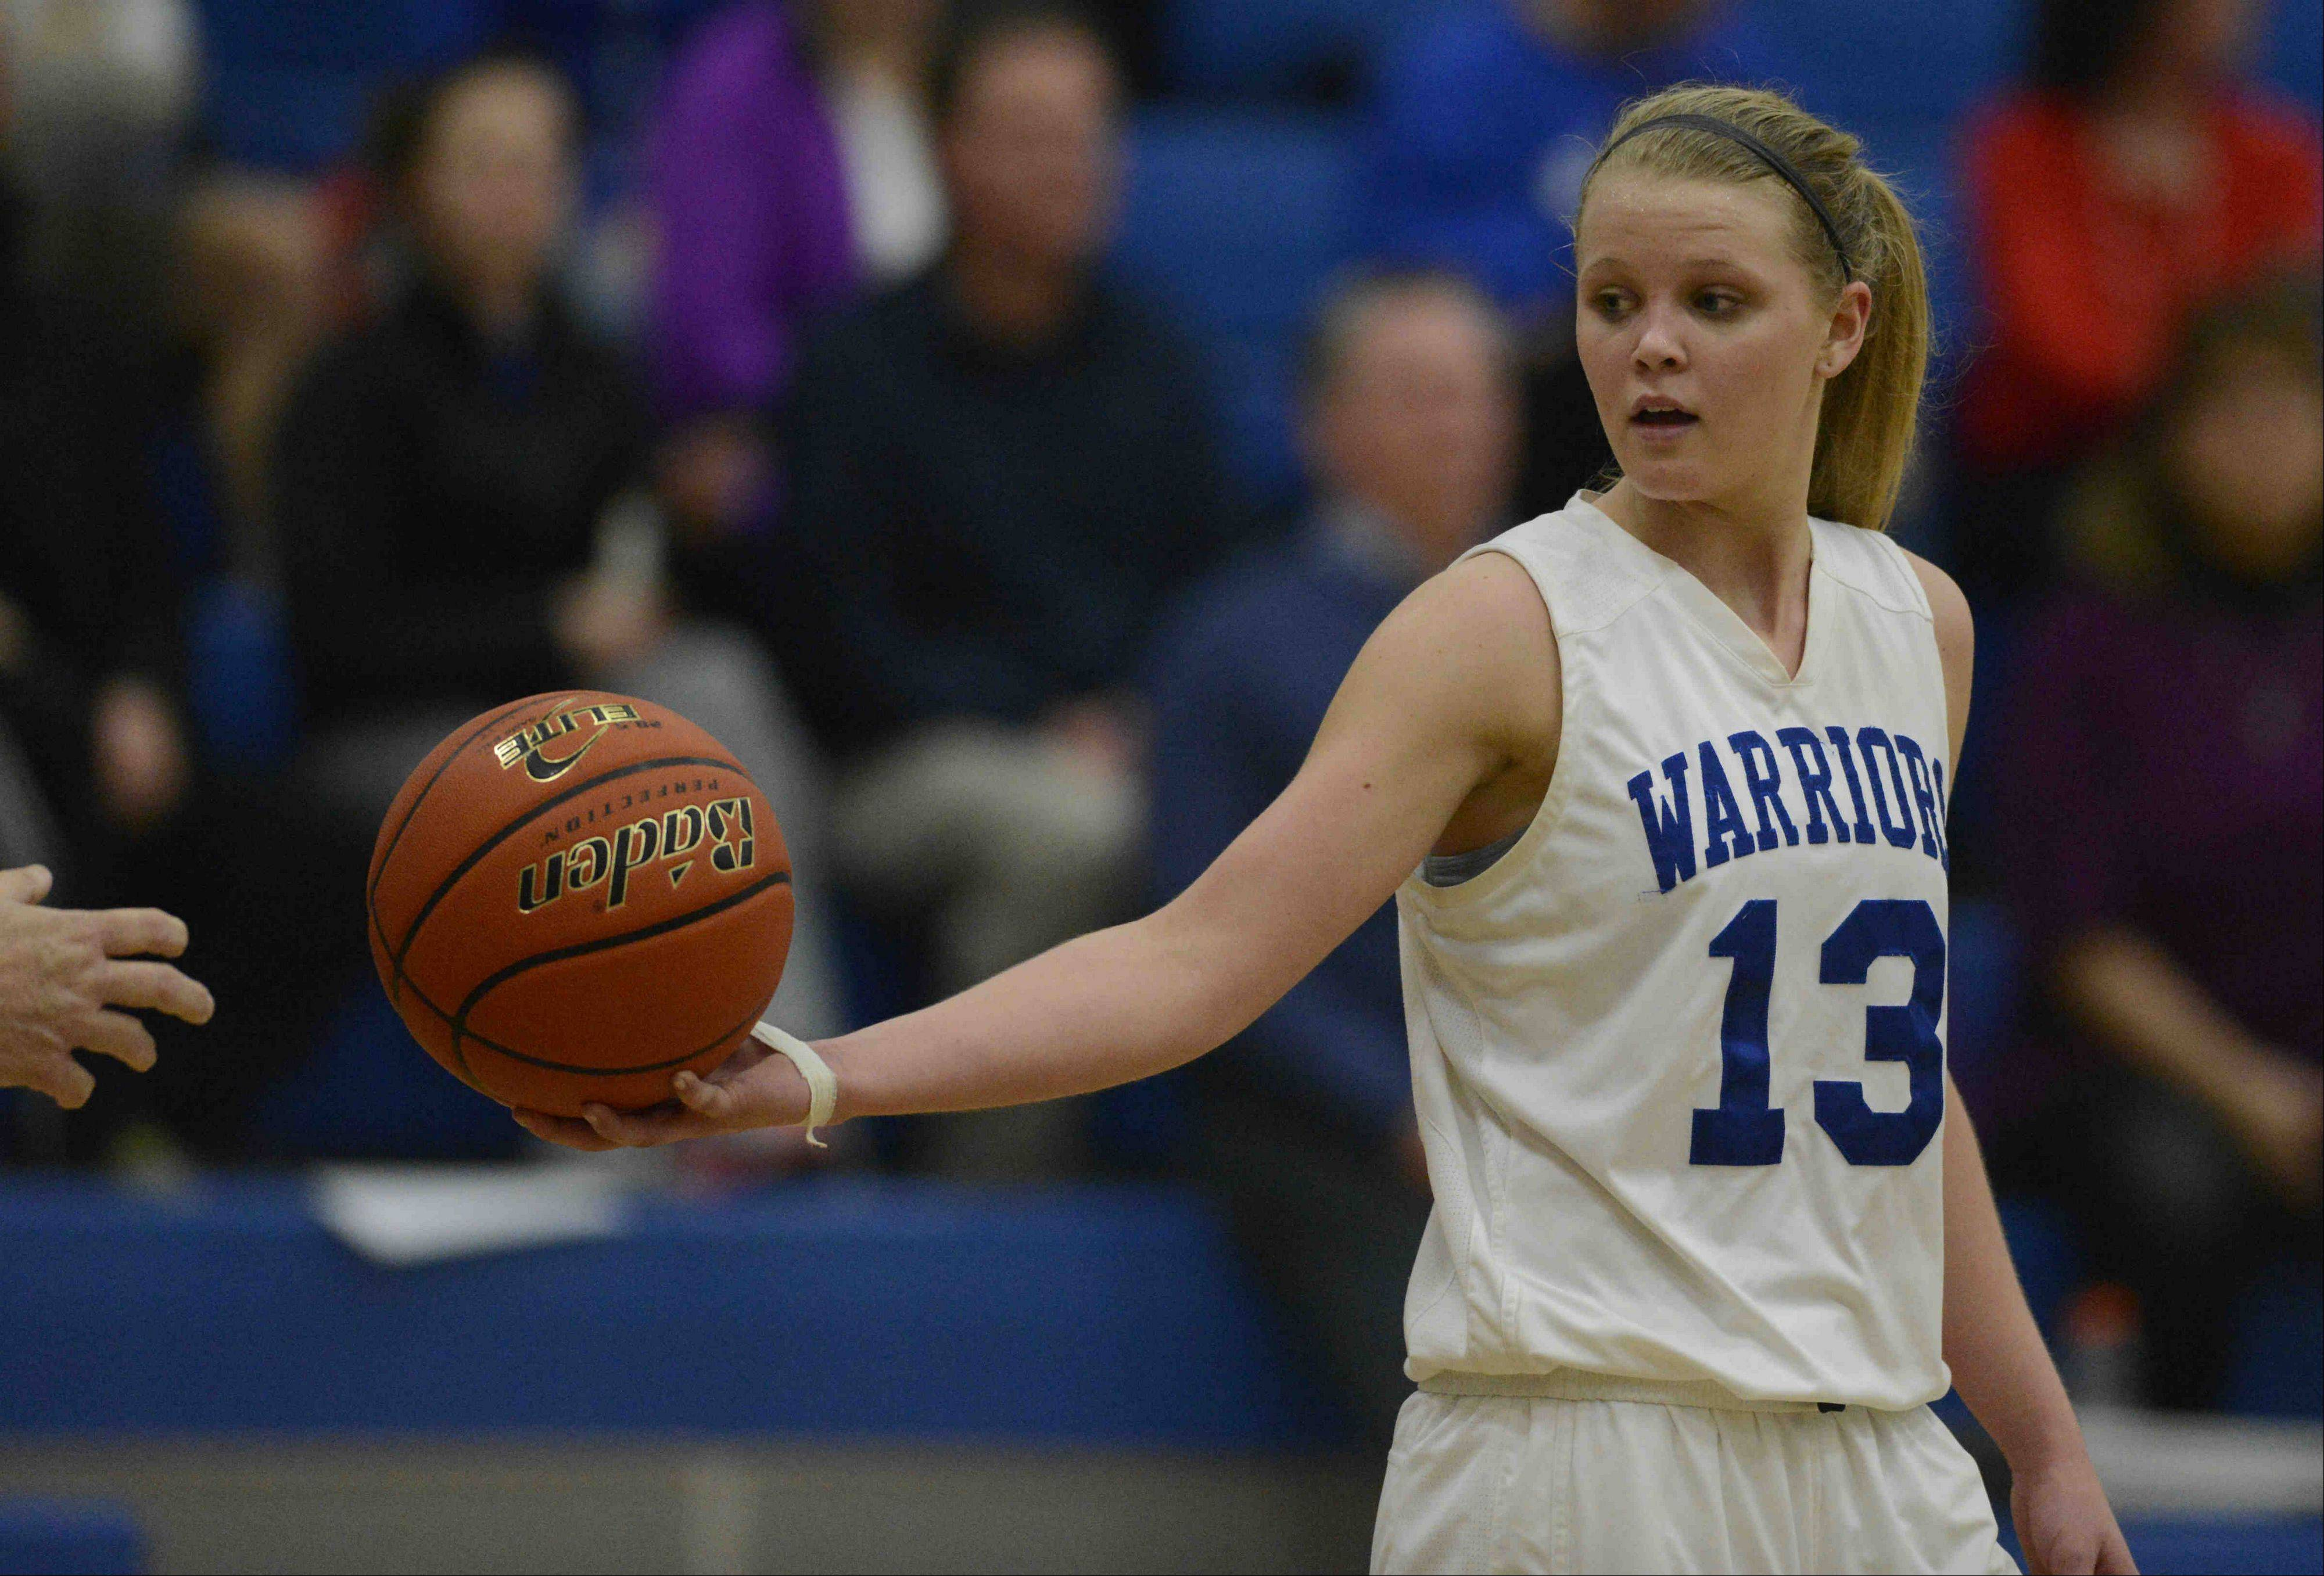 Junior McKaila Hays is one of the top players this season for Westminster Christian. The Warriors, who reached a sectional final last year, are the No. 1 seed in next week's Class 1A Harvest Christian regional.